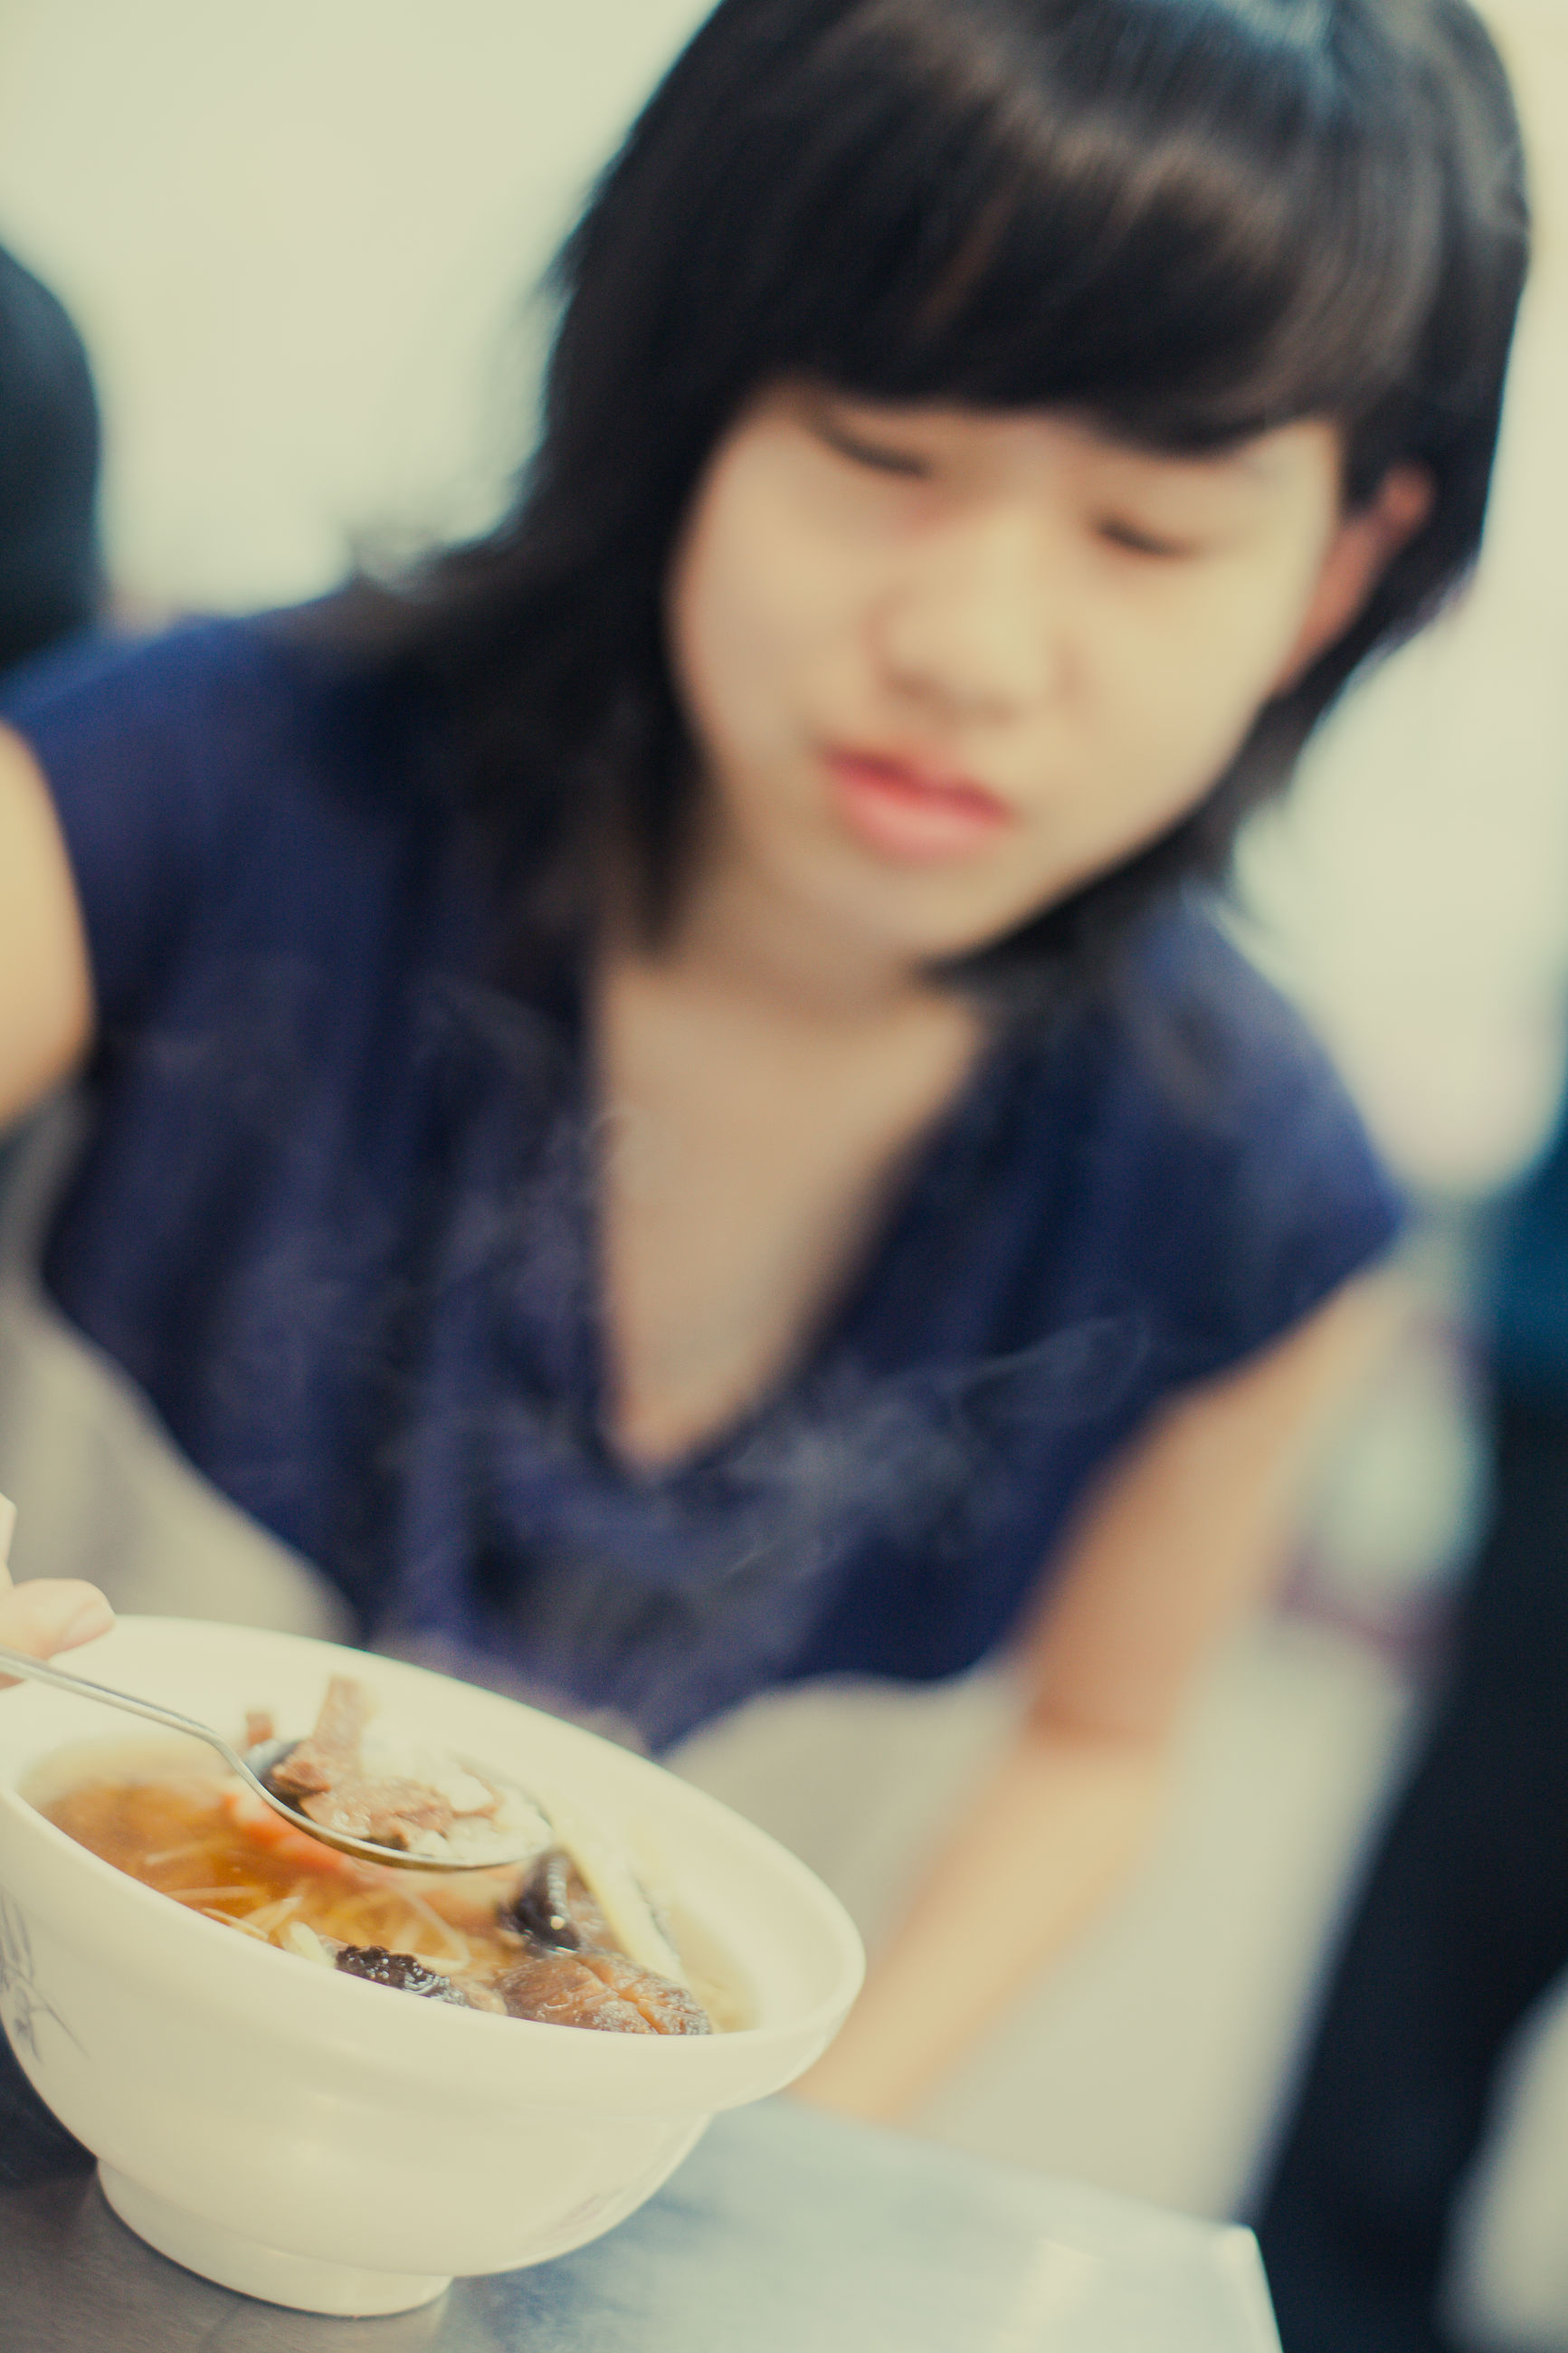 food, food and drink, one person, indoors, child, table, real people, childhood, bowl, focus on foreground, freshness, selective focus, women, ready-to-eat, front view, meal, lifestyles, close-up, girls, breakfast, hairstyle